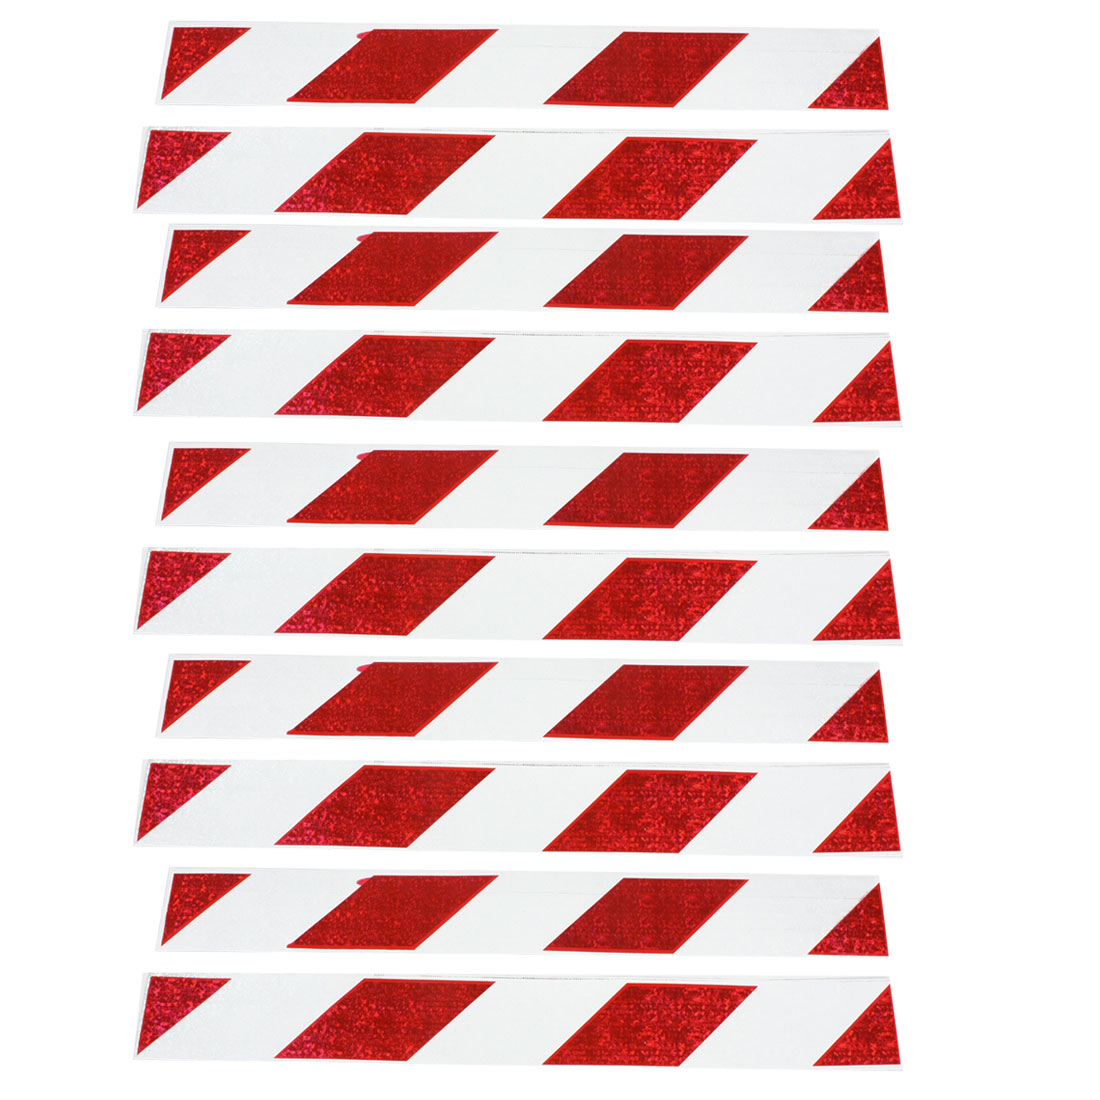 10 Pcs Diagonal Stripe Reflective Truck Van Car Sticker Decal Sign Red White